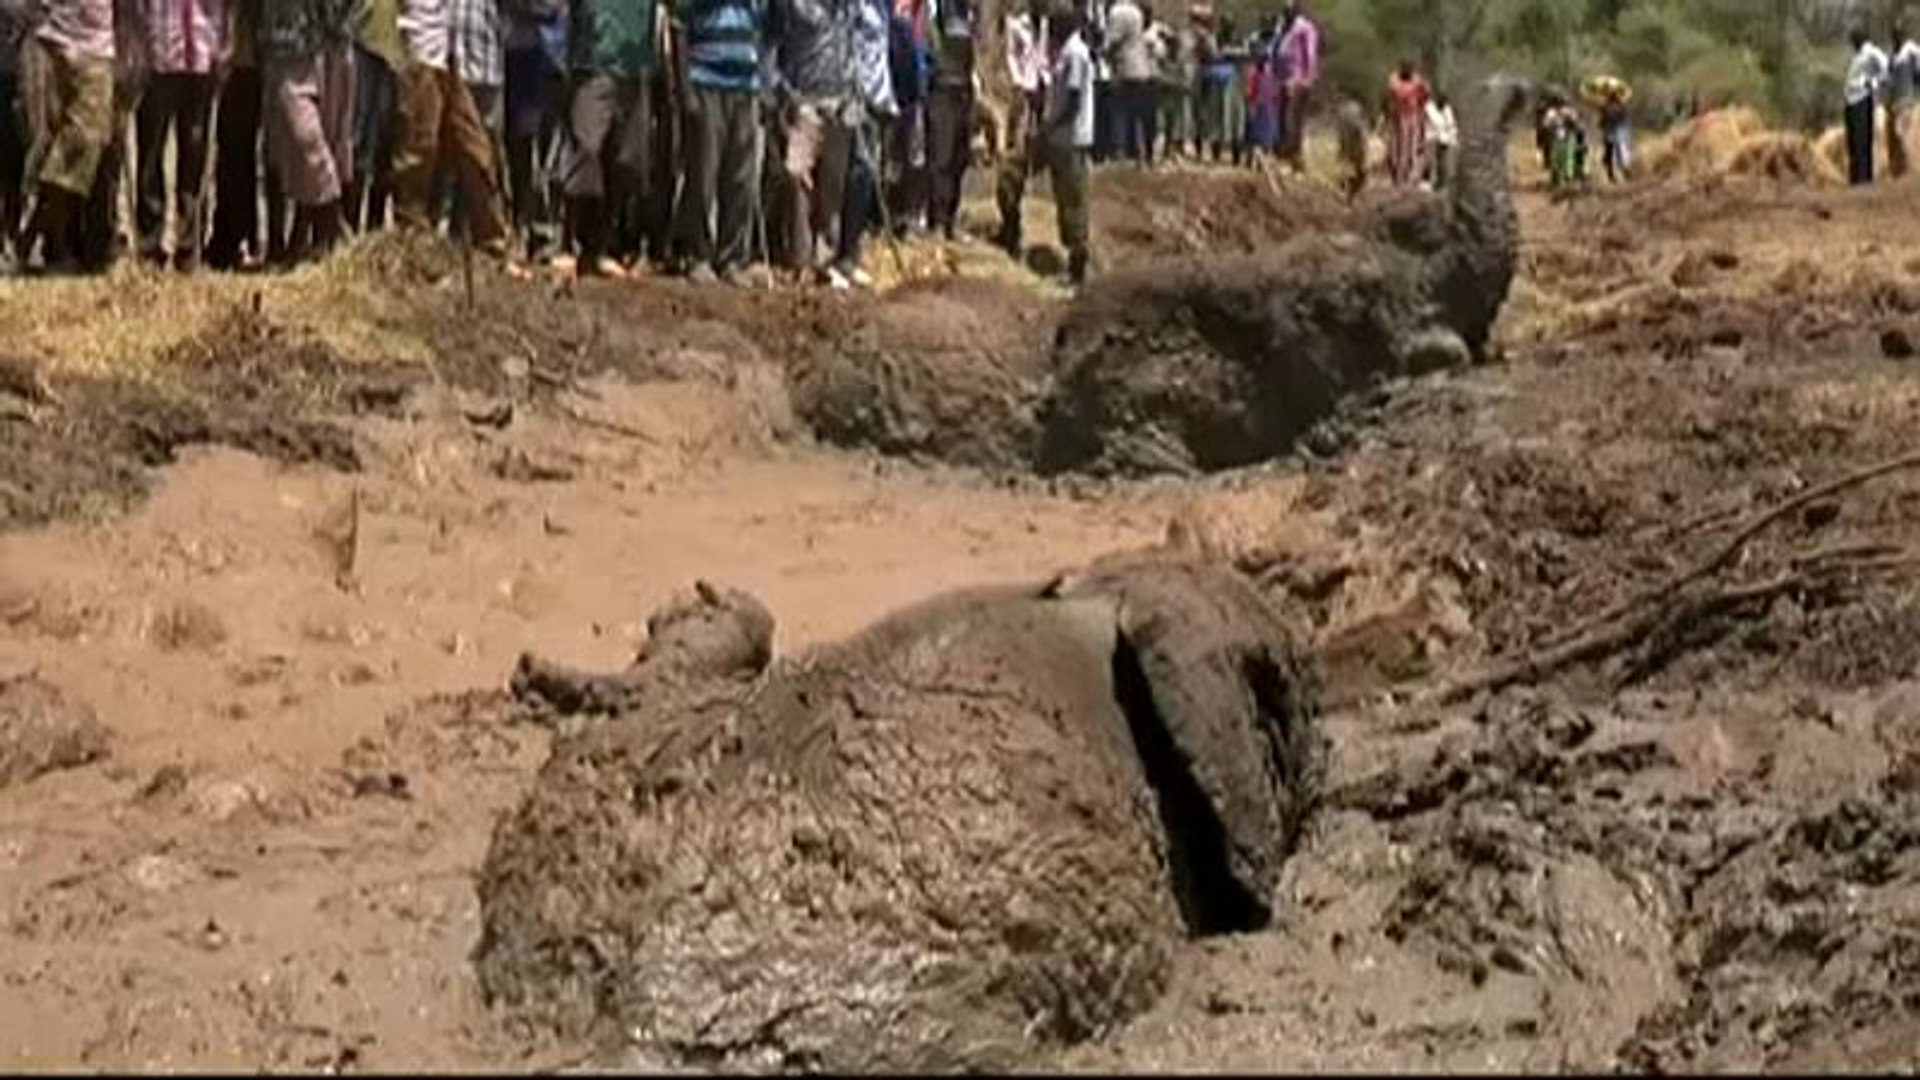 Kenyan rangers free three elephants trapped in muddy waters